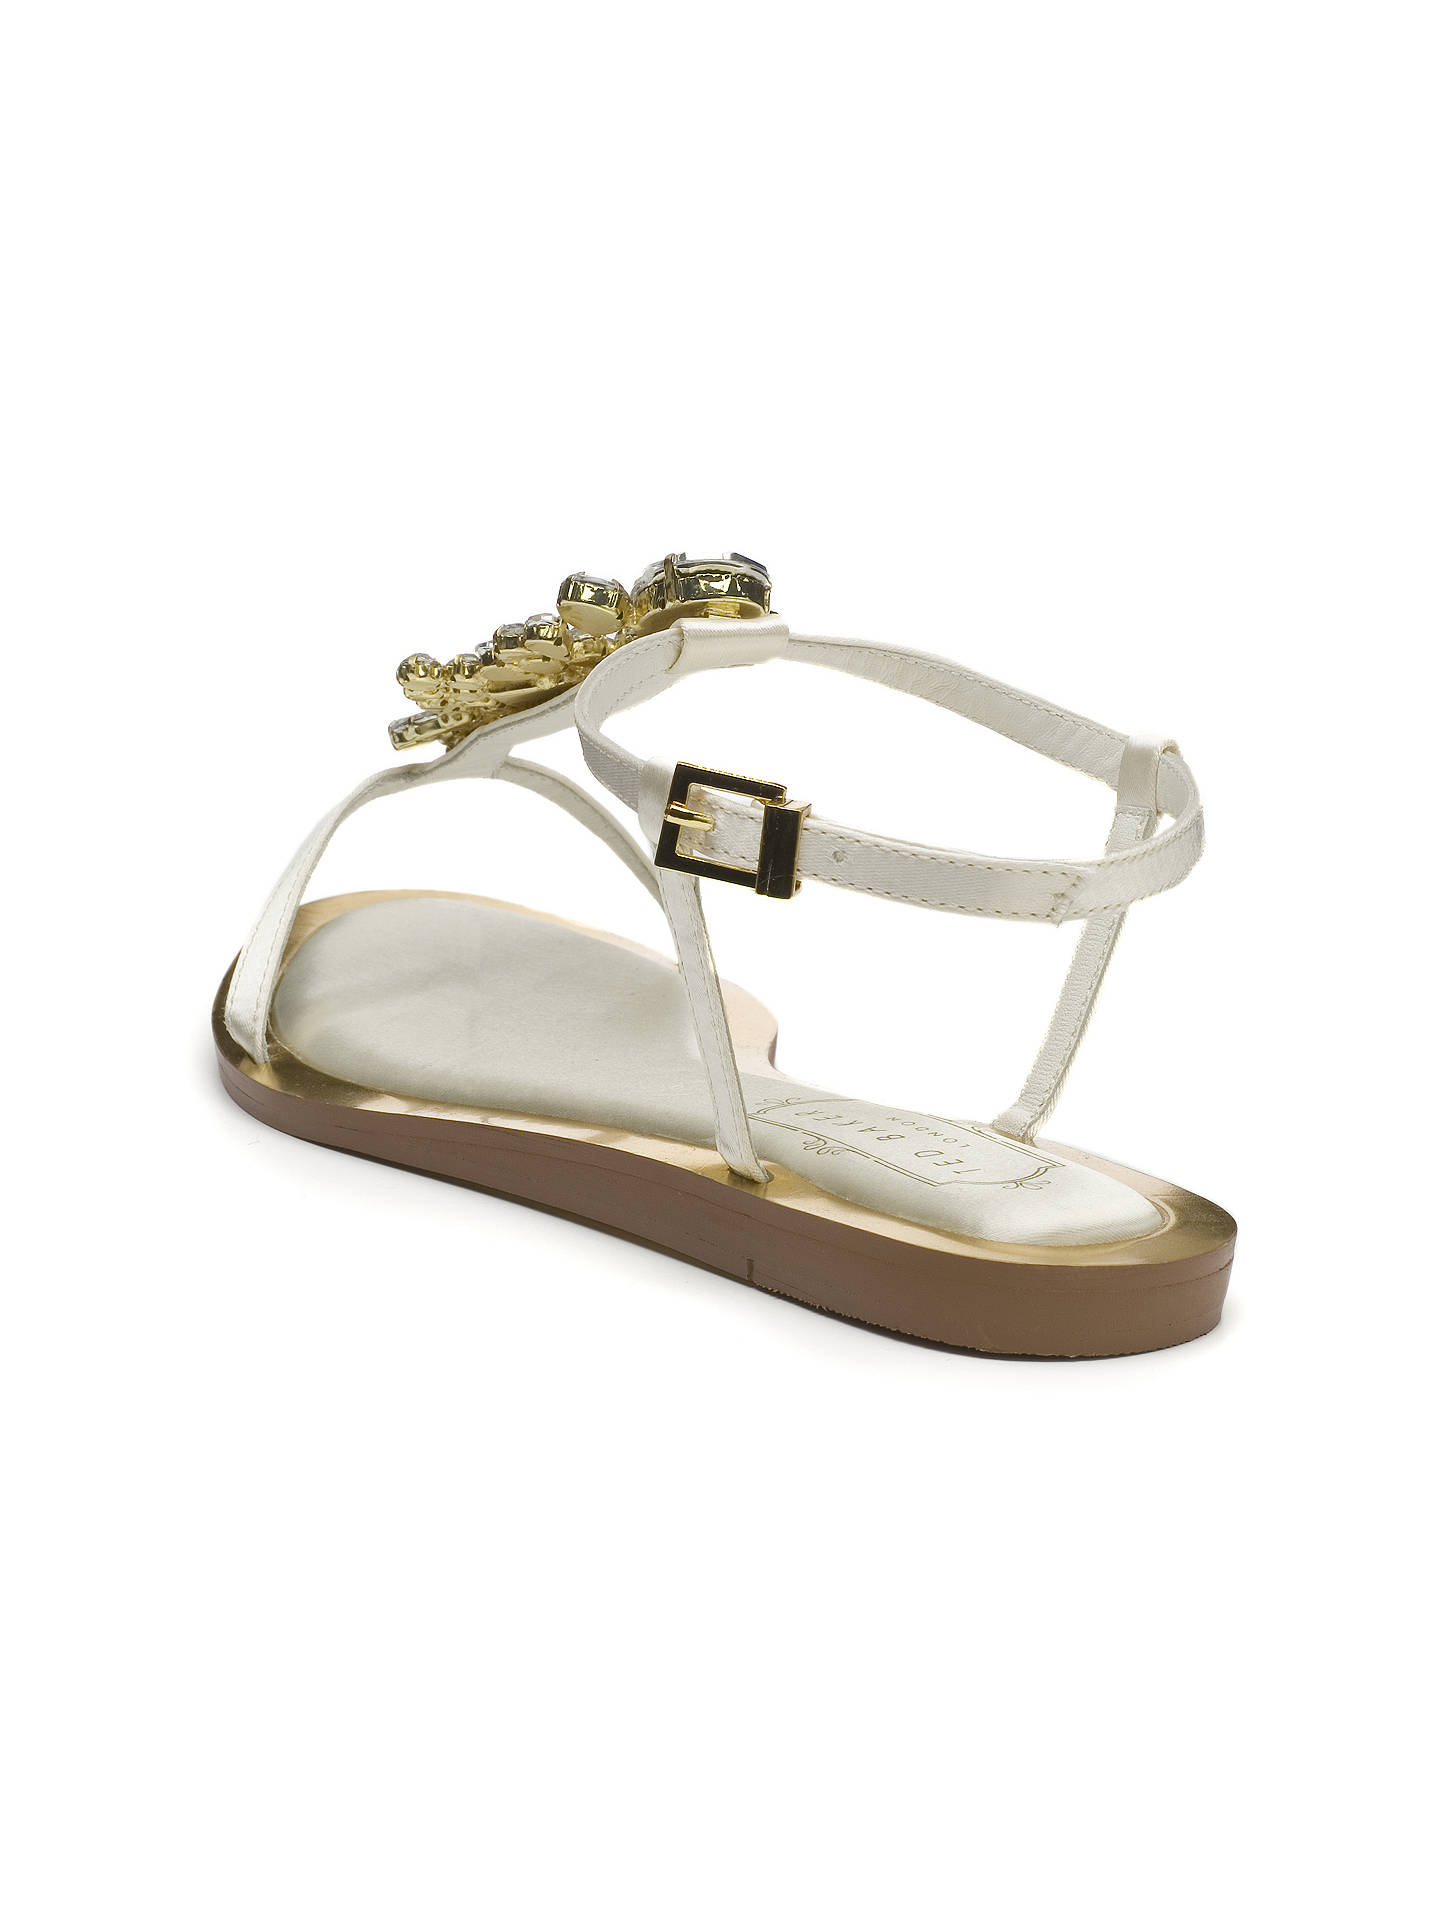 62cffa588 ... Buy Ted Baker Tie the Knot Roseupe Jewelled Sandals